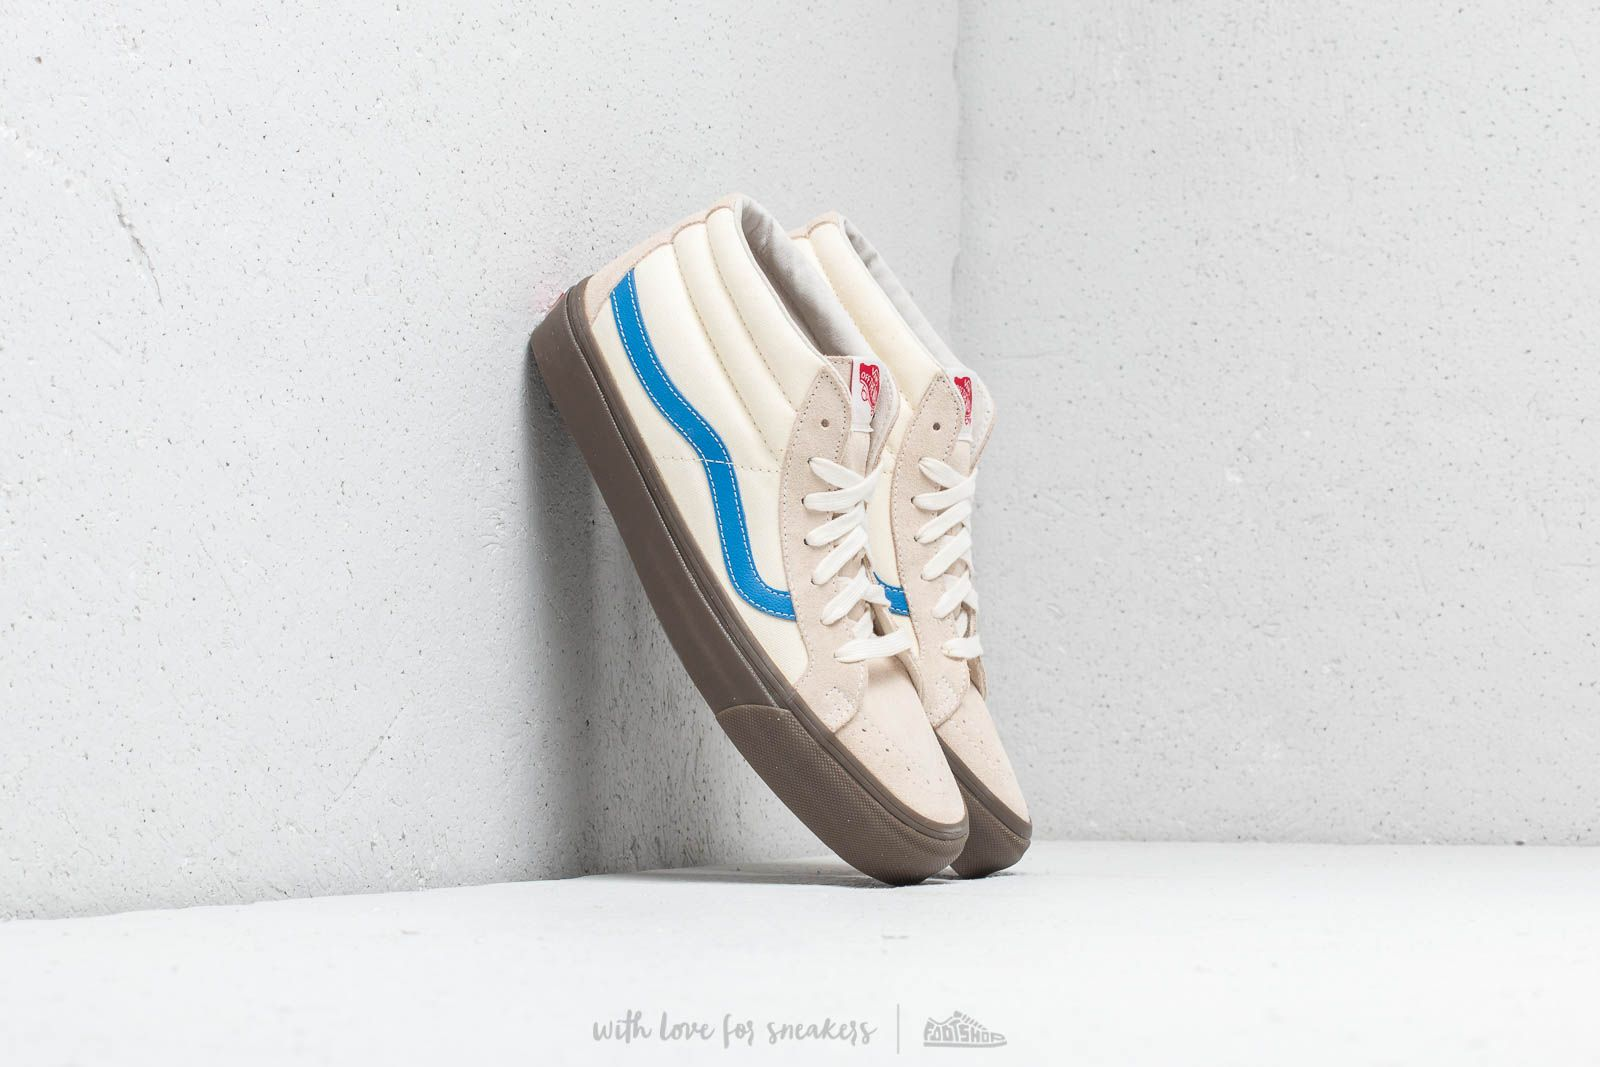 cdd0a917b6 Vans OG Sk8-Mid LX (Suede Canvas) White Asperagus at a great